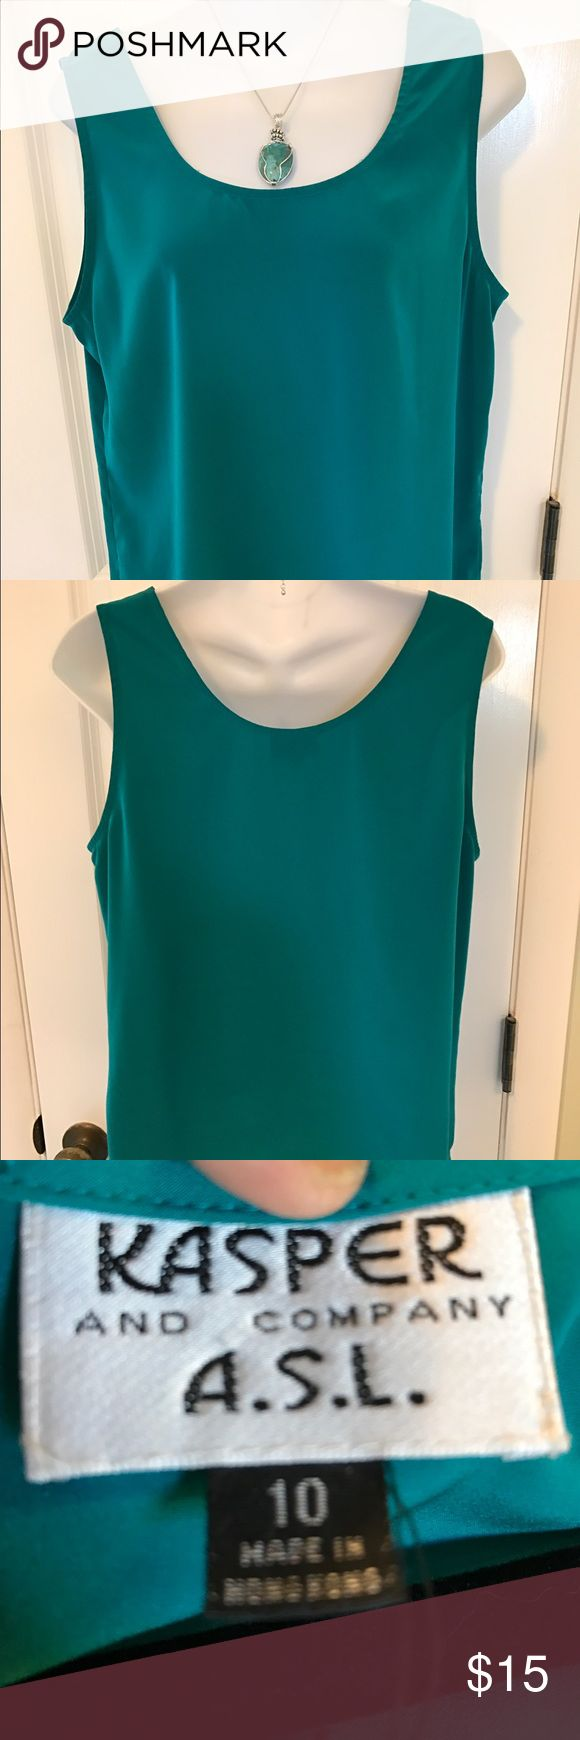 Kasper teal green tank top. Size 10. Teal green tank top can be worn with suits, skirts, or slacks. Kasper always is quality. Size 10. Kasper Tops Tank Tops